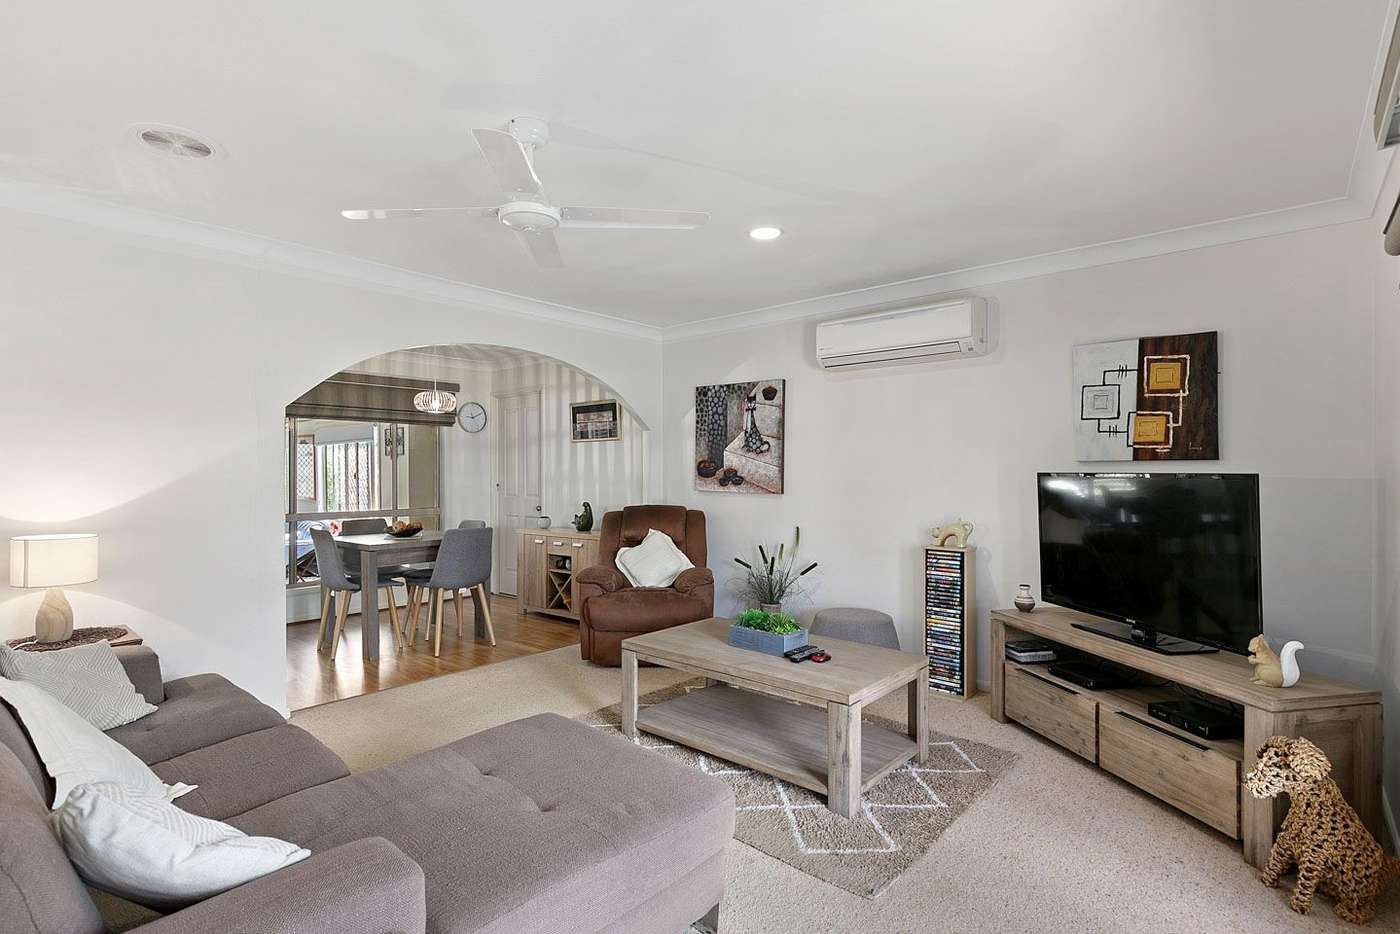 Sixth view of Homely house listing, 7 Bauhinia Drive, Kawungan QLD 4655